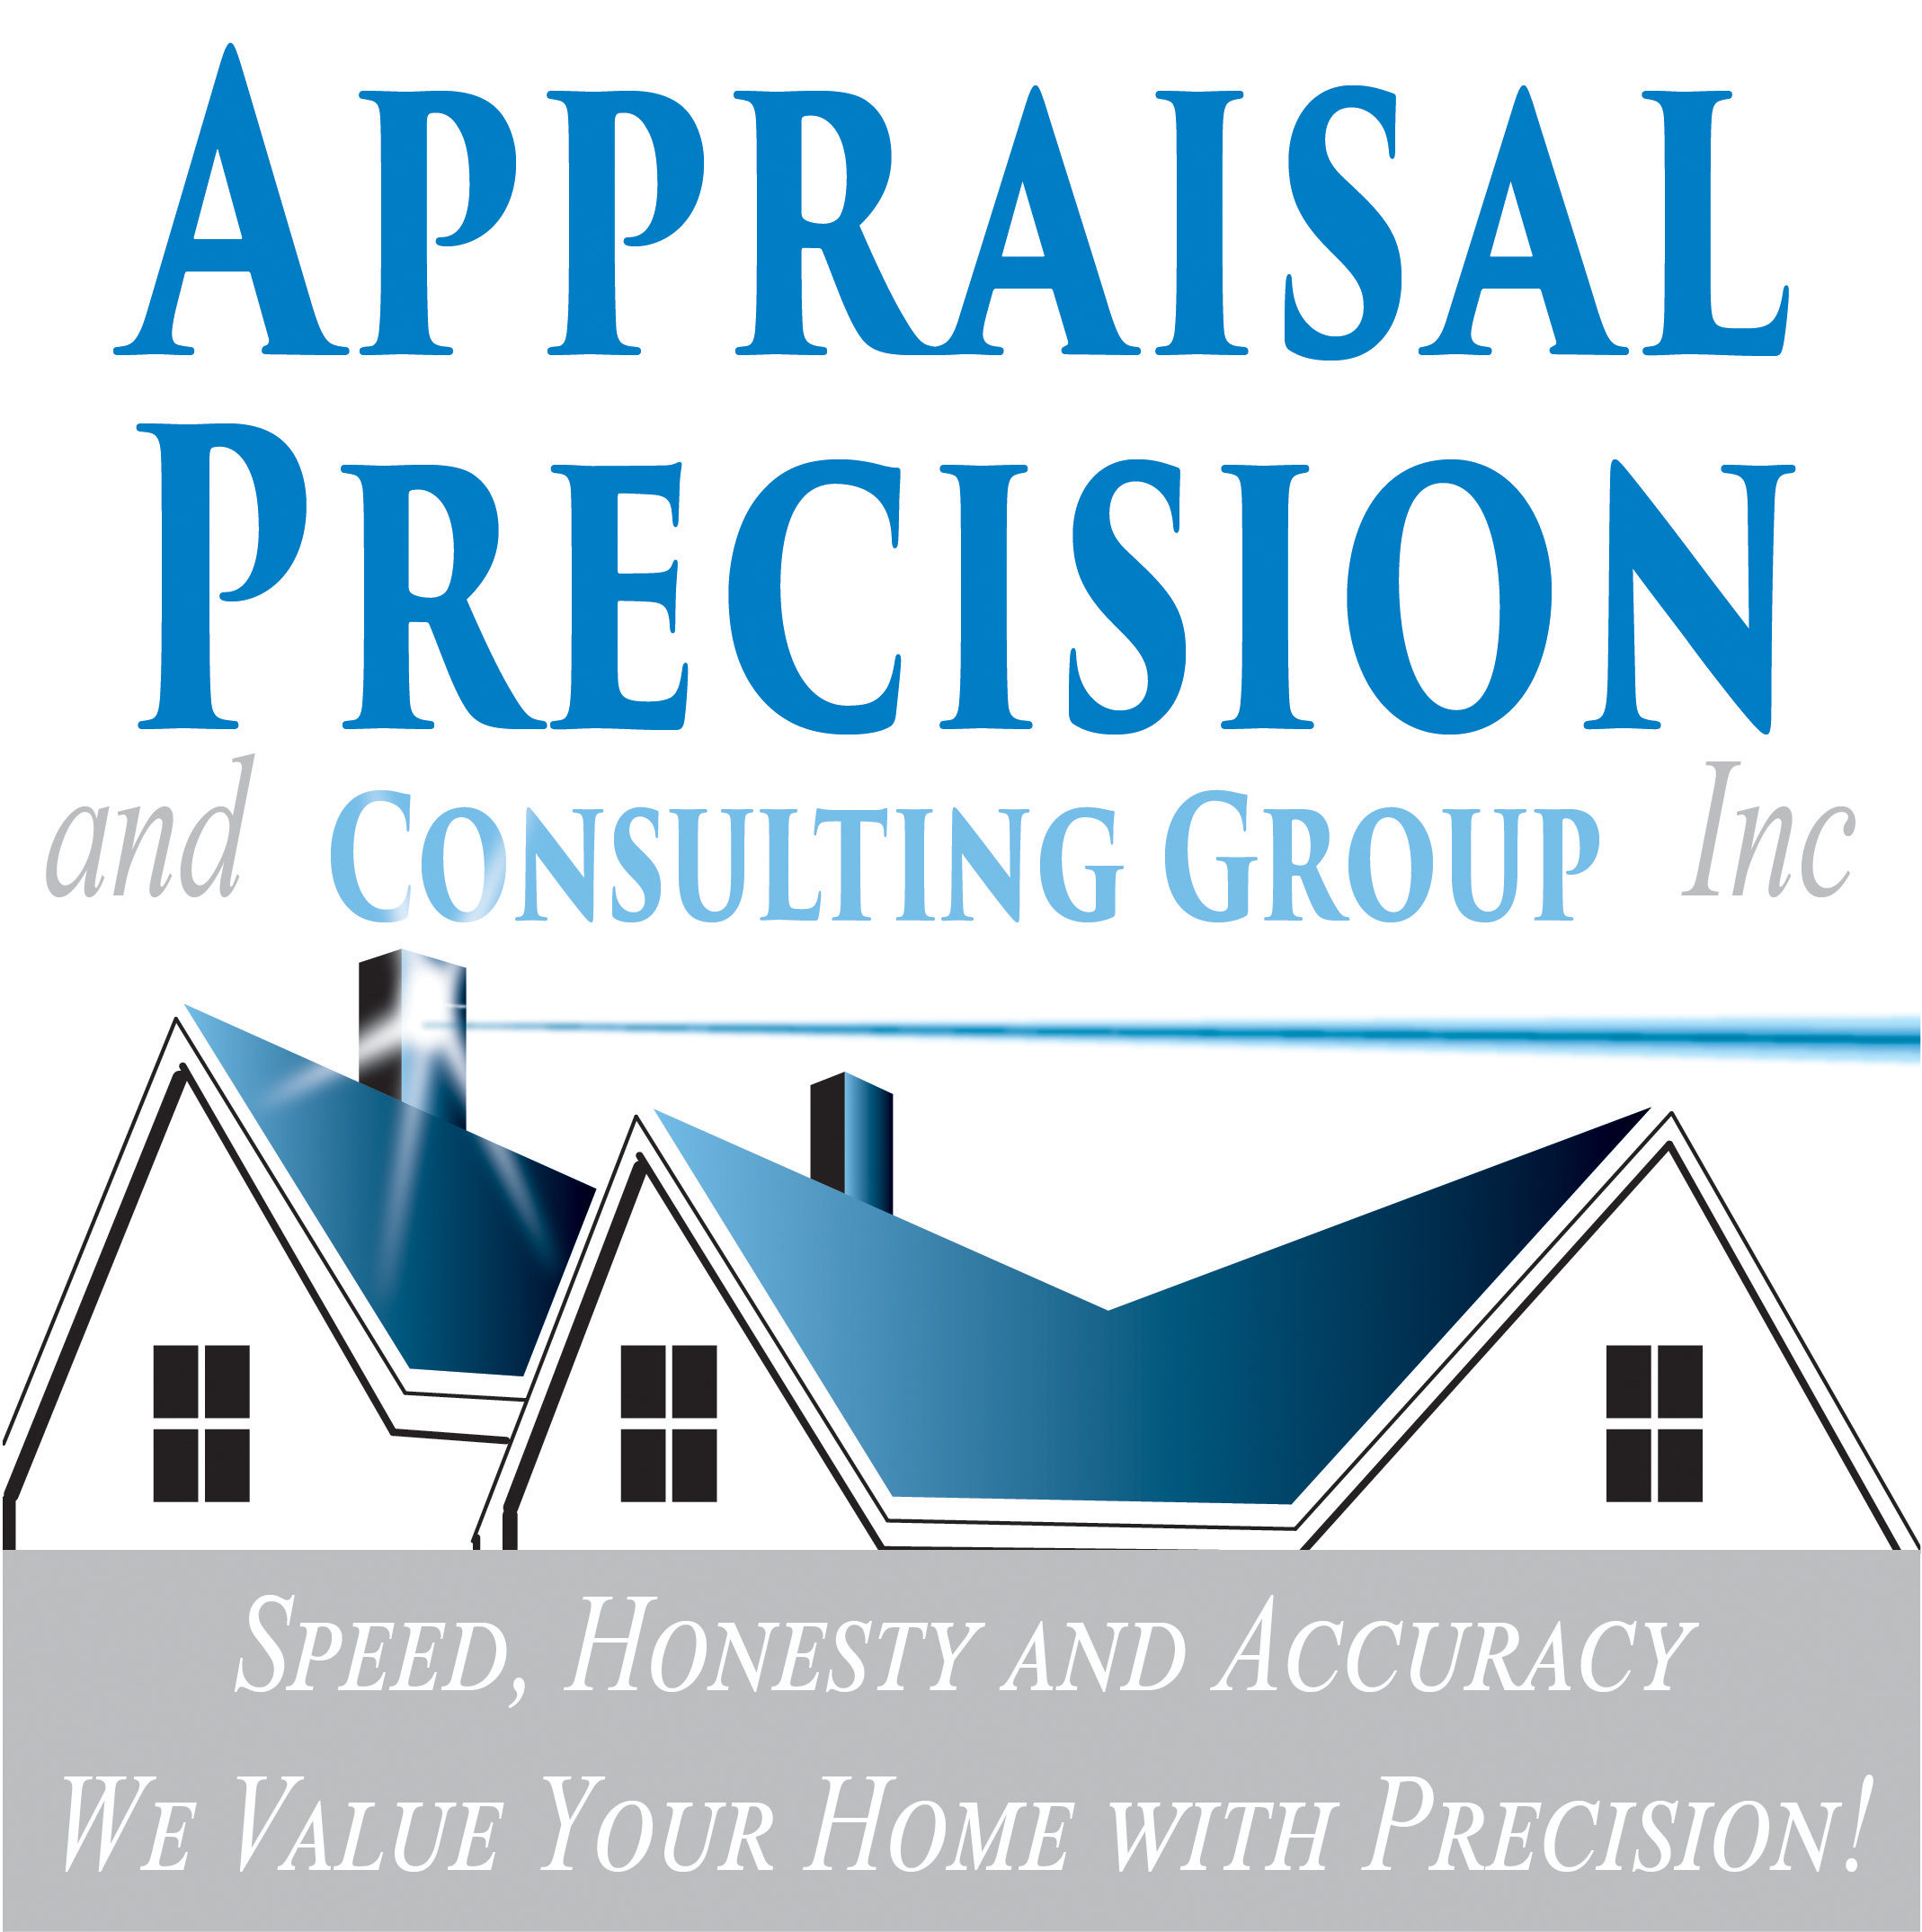 Appraisal Precision and Consulting Group Inc